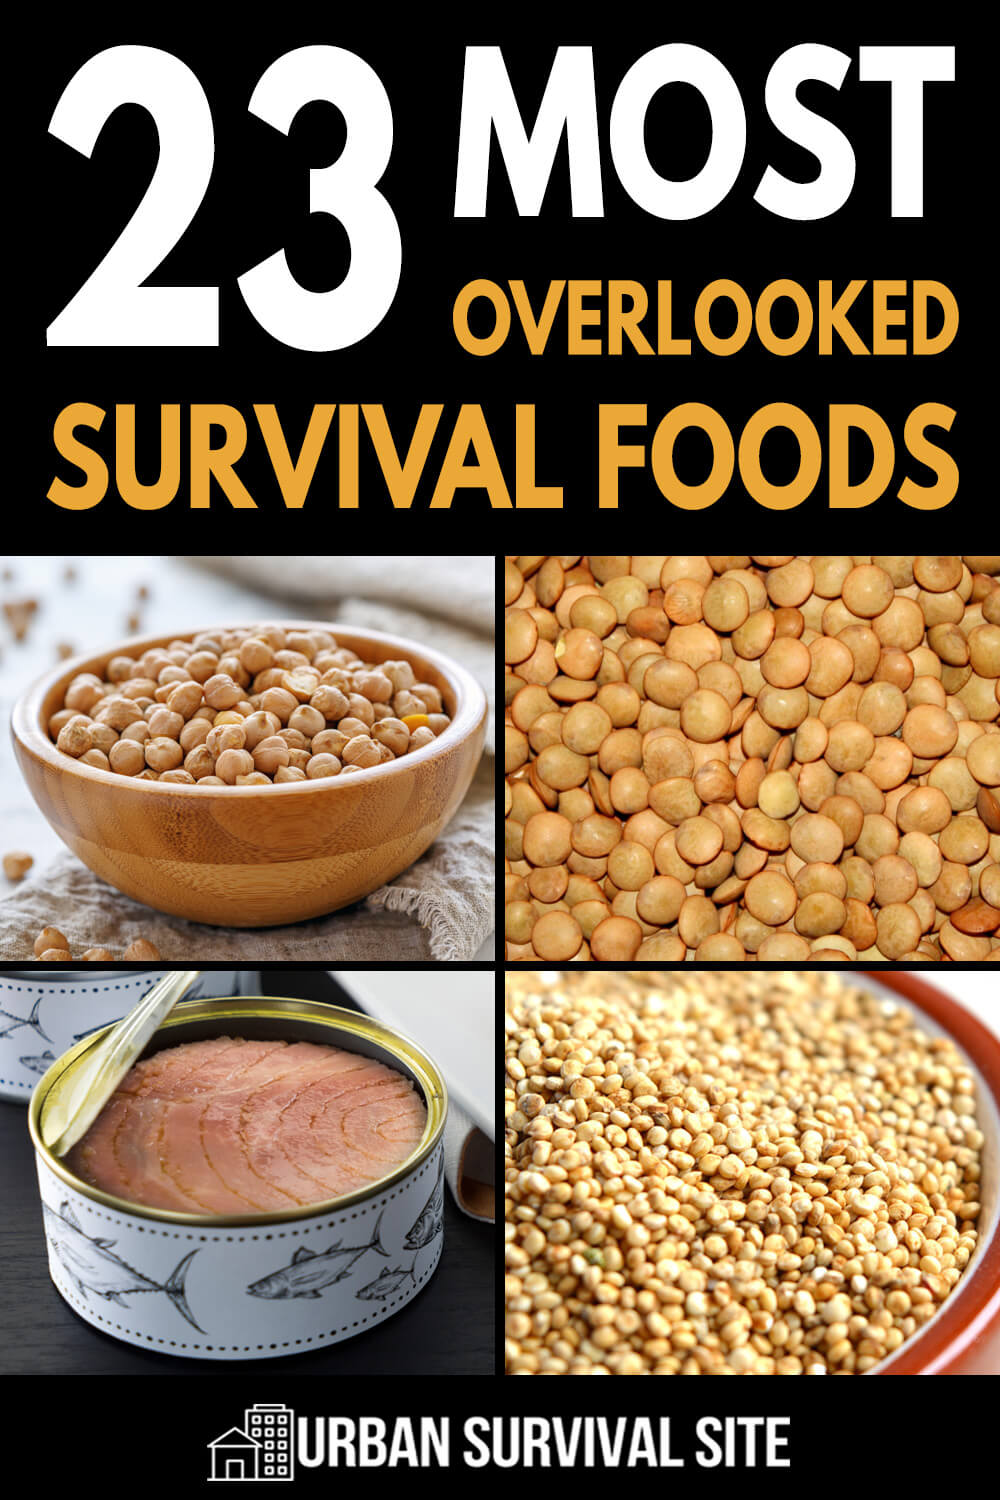 23 Most Overlooked Survival Foods